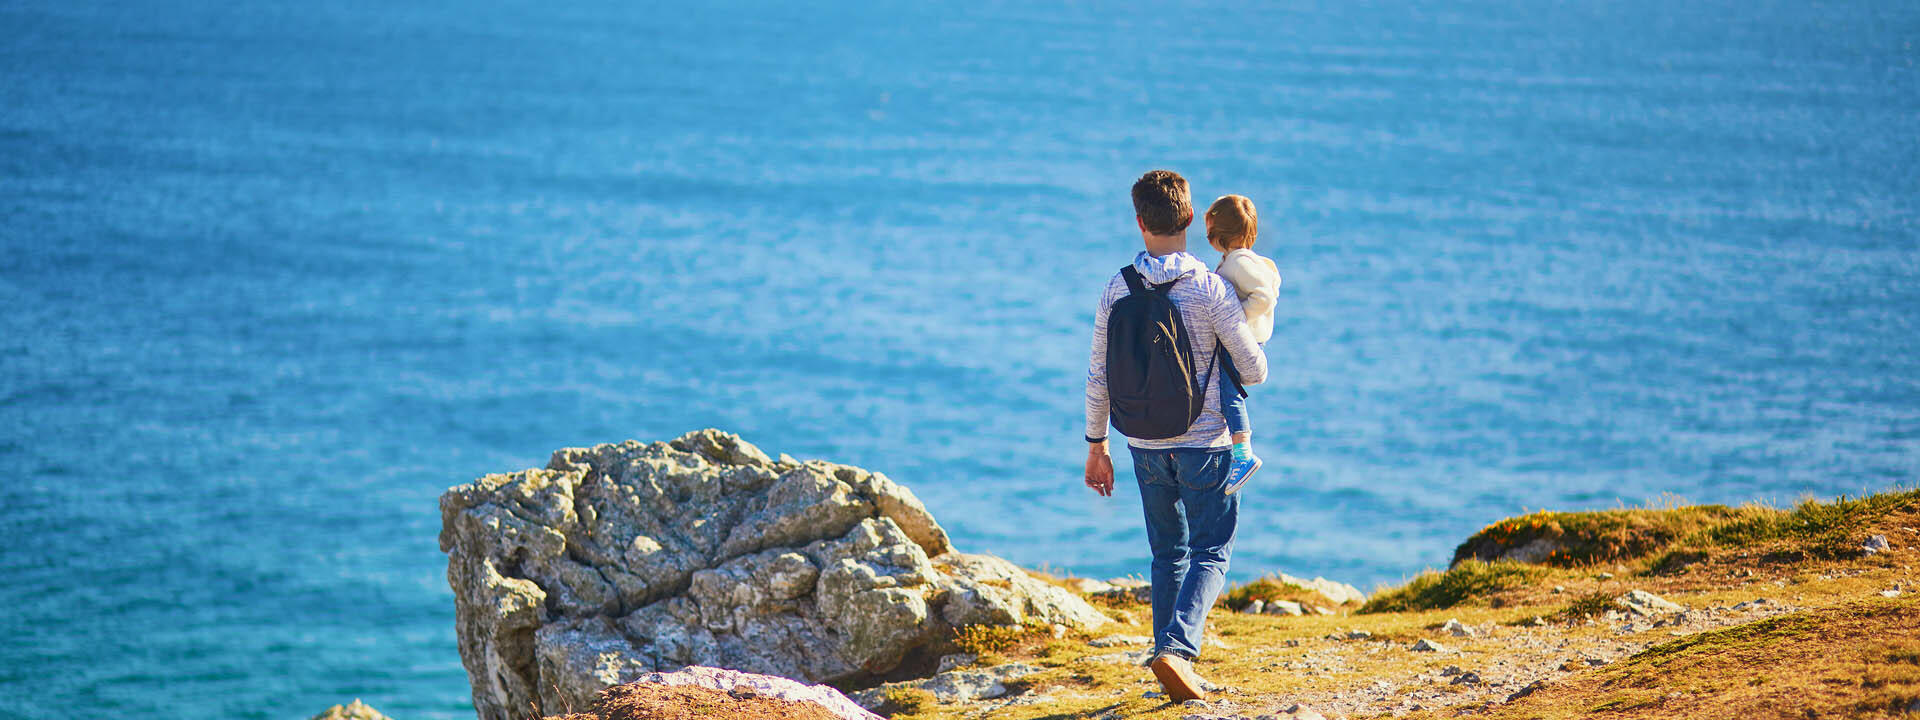 Family hotels in Brittany and things to do with kids